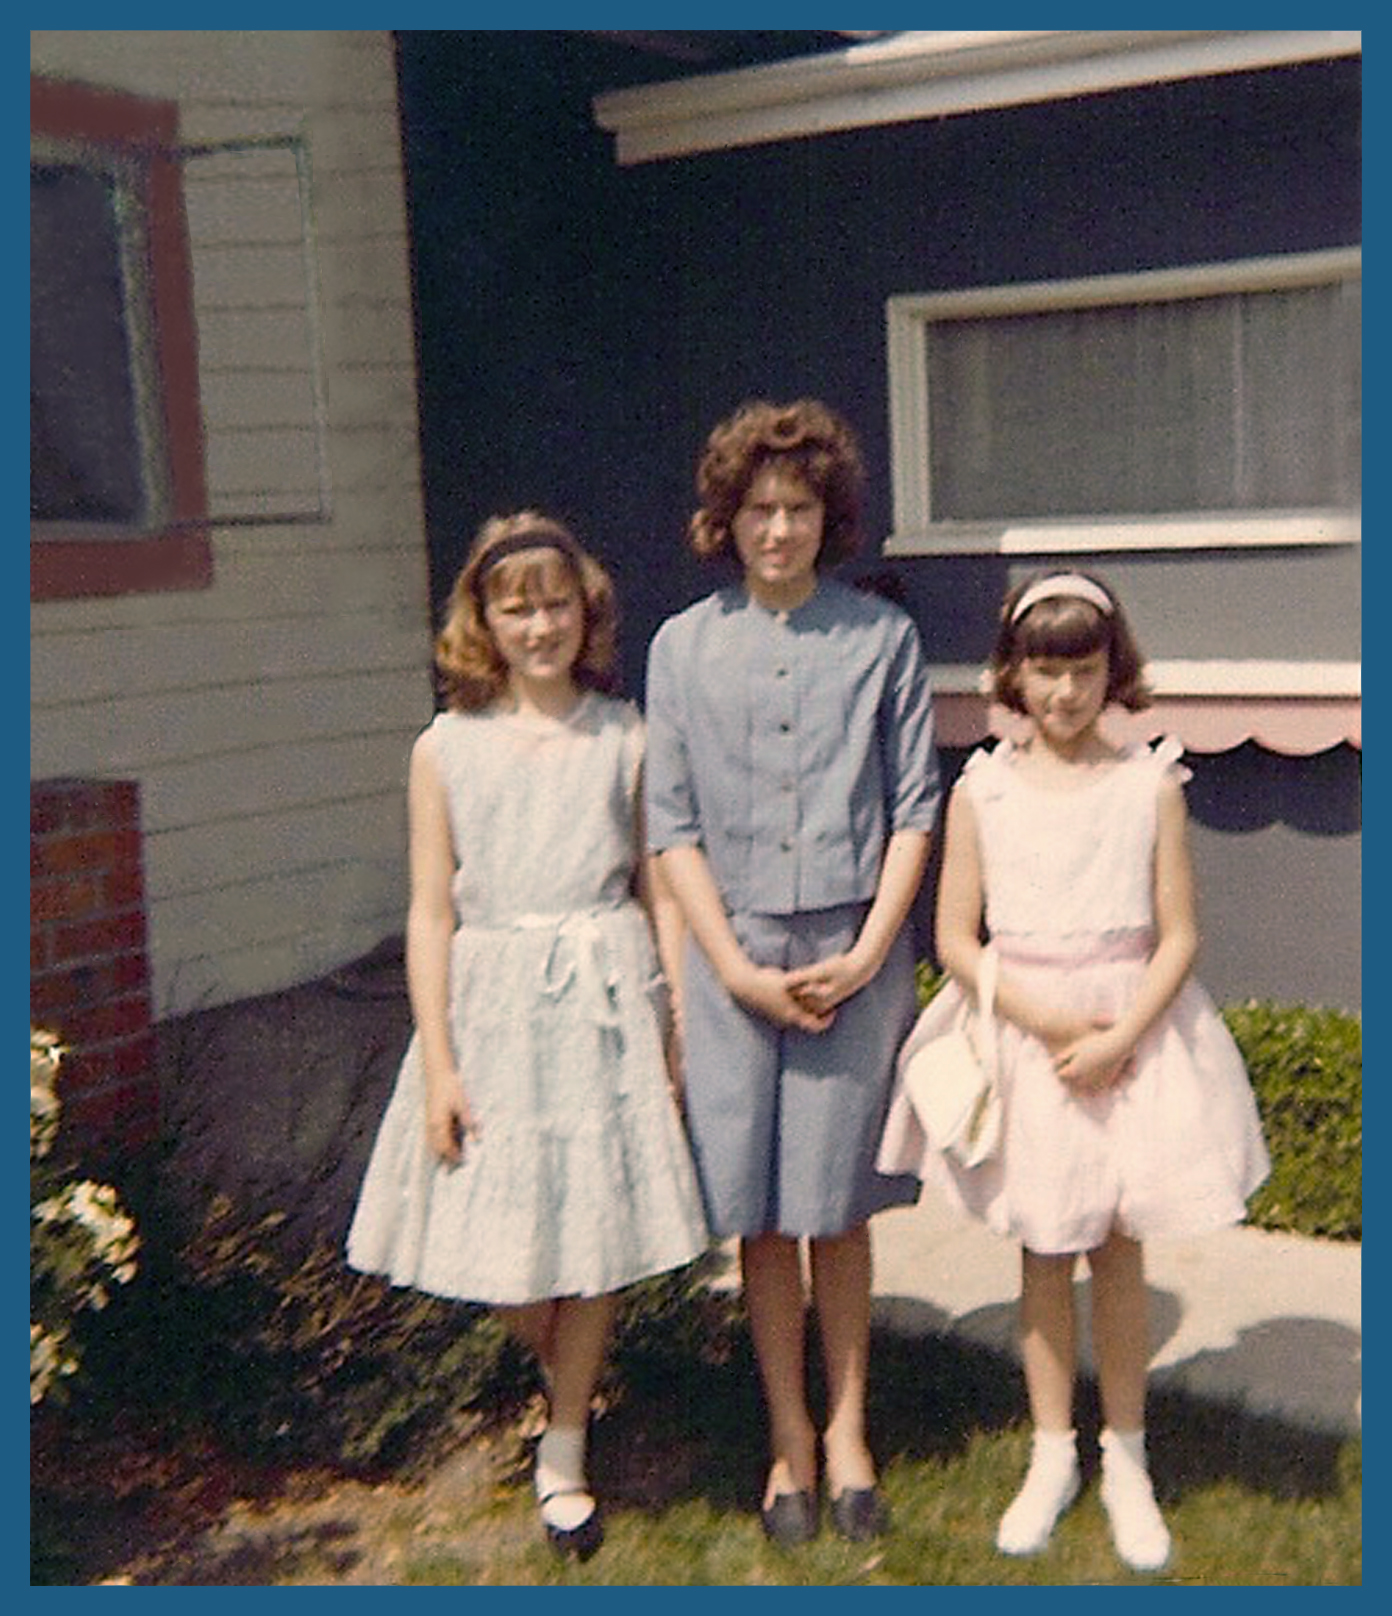 Janet, myself and Joyce in front of our Santa Clara house, circa 1965.